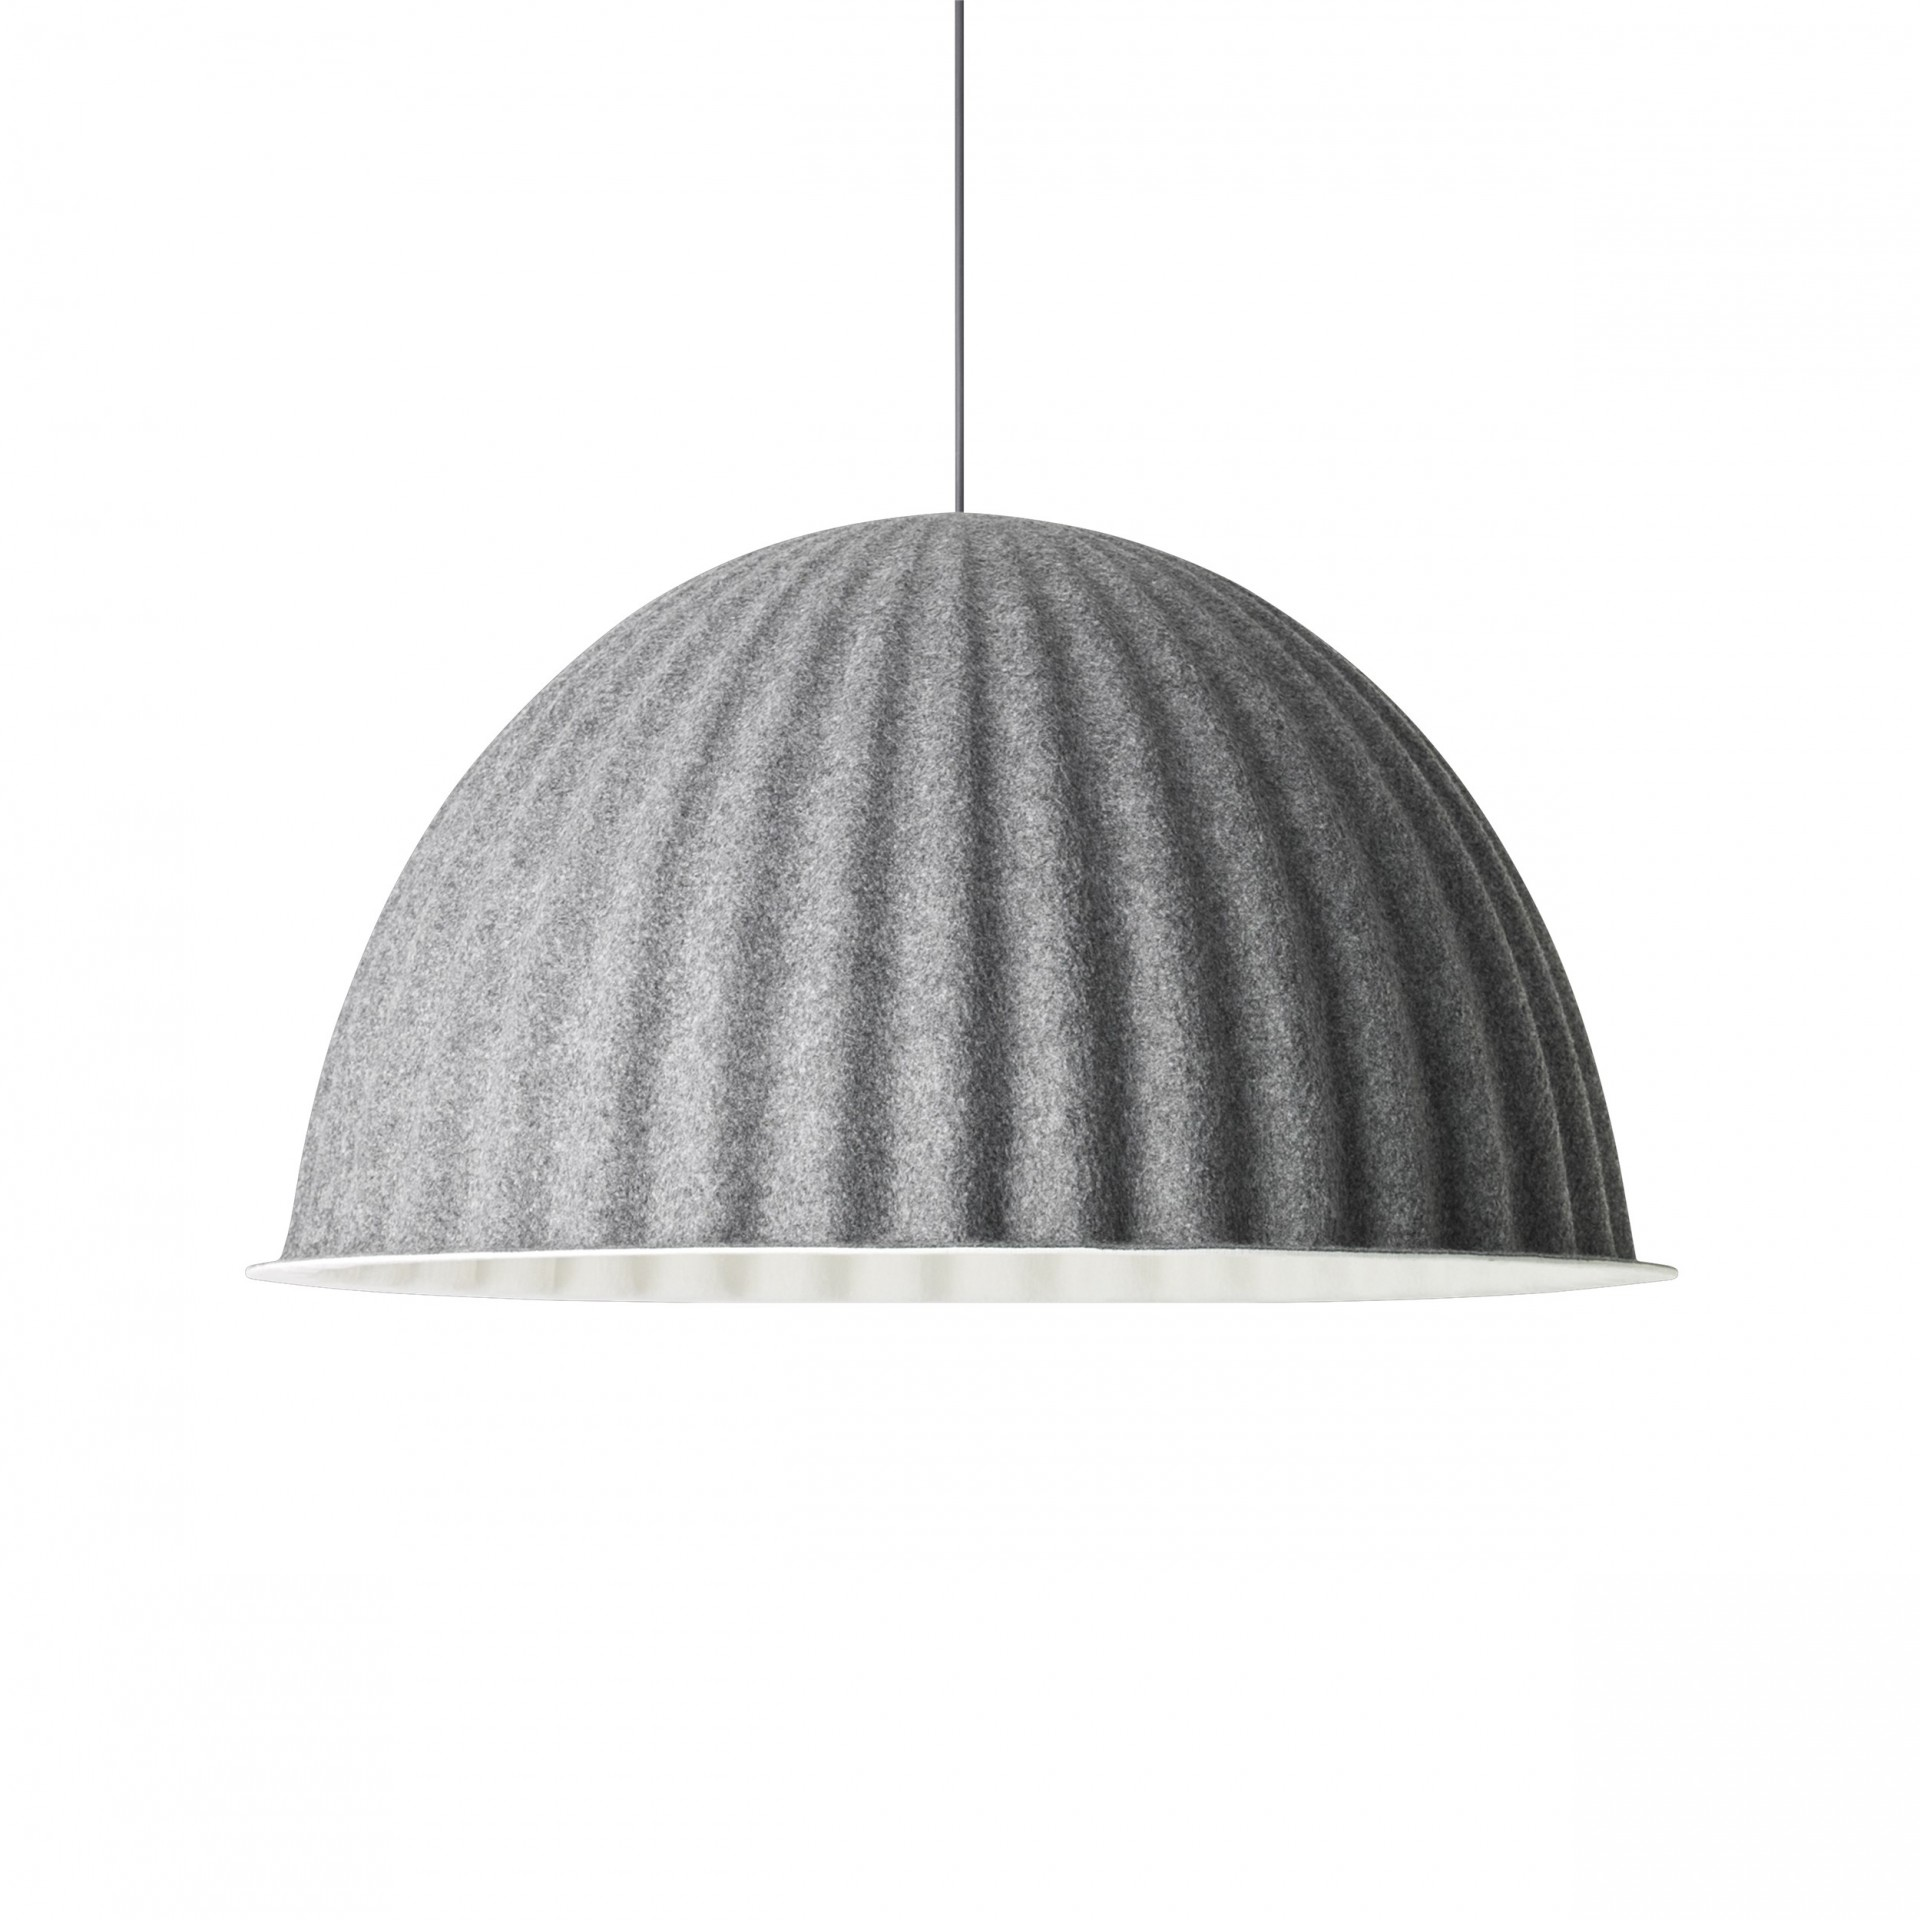 Under the Bell - Iskos-Berlin,  Muuto